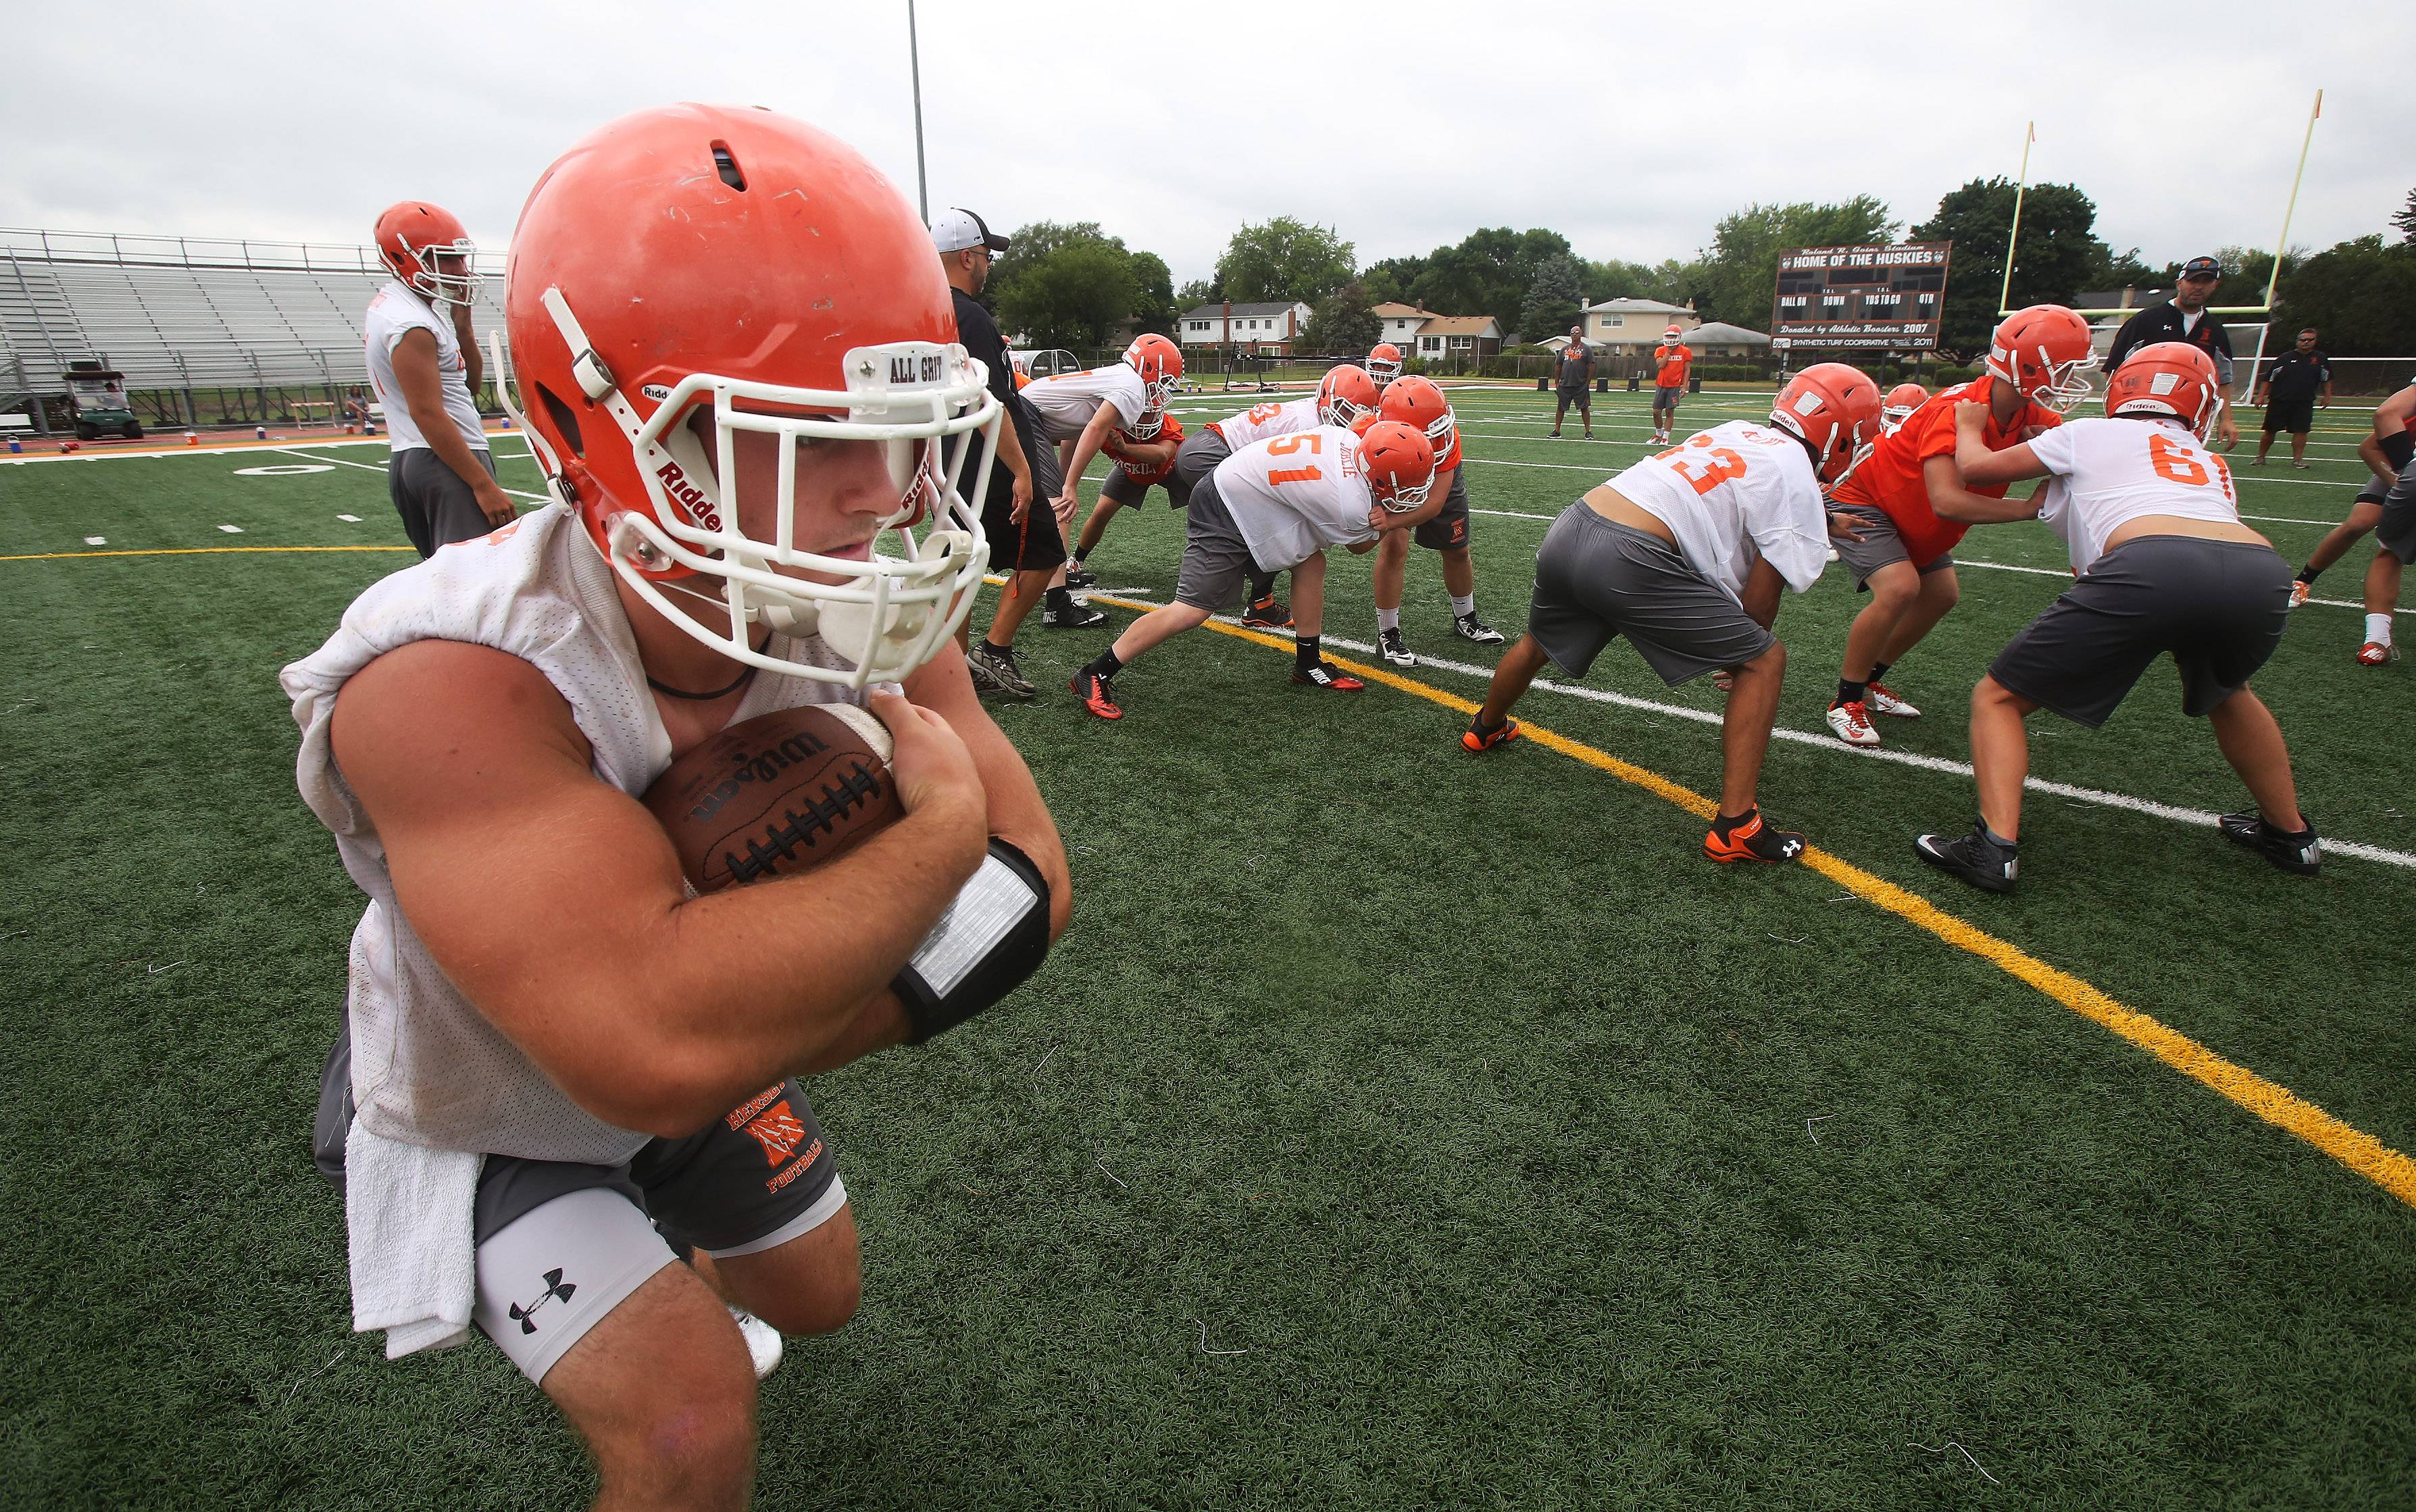 Running back Chase Bandolik carries the ball during football practice at Hersey.